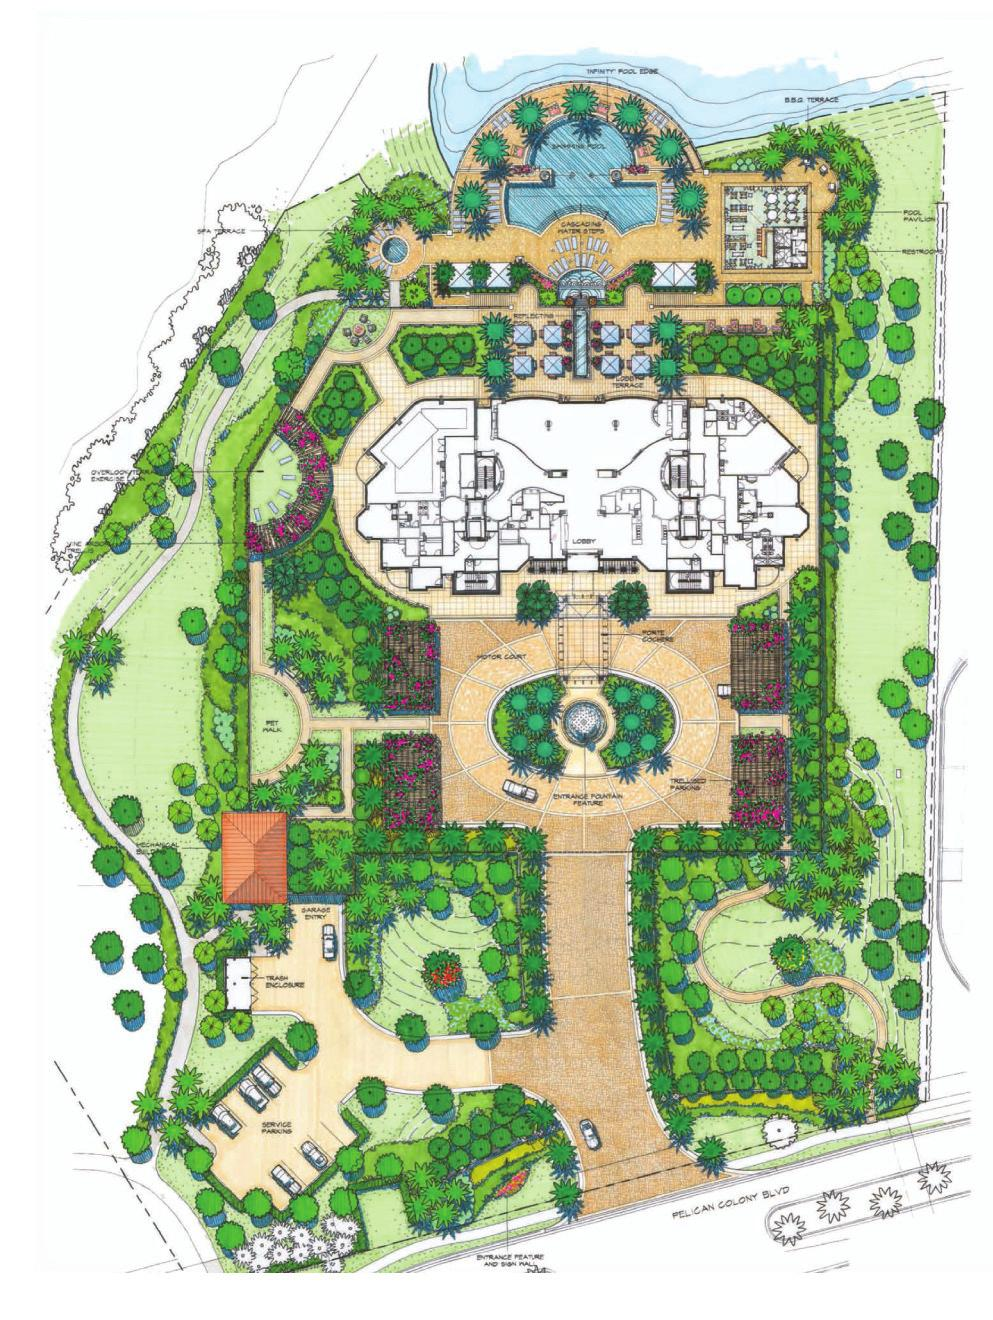 SITE PLAN YOUR P R I V AT E OASIS Lushly landscaped arrival court with porte cochere entry Private